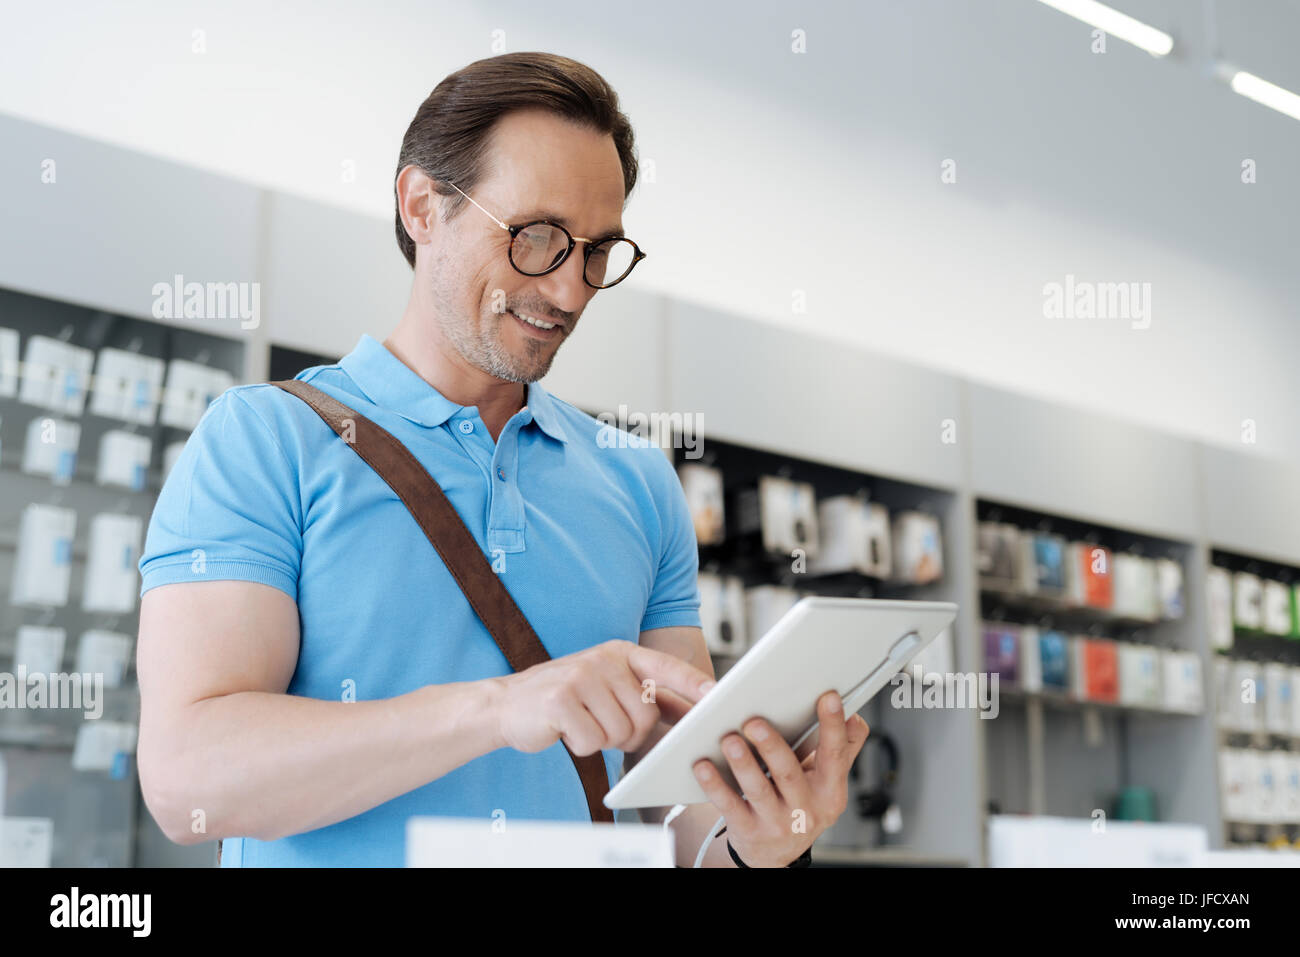 This one is real dream. Male shopper looking for a new gadget and trying out all the technological capabilities - Stock Image